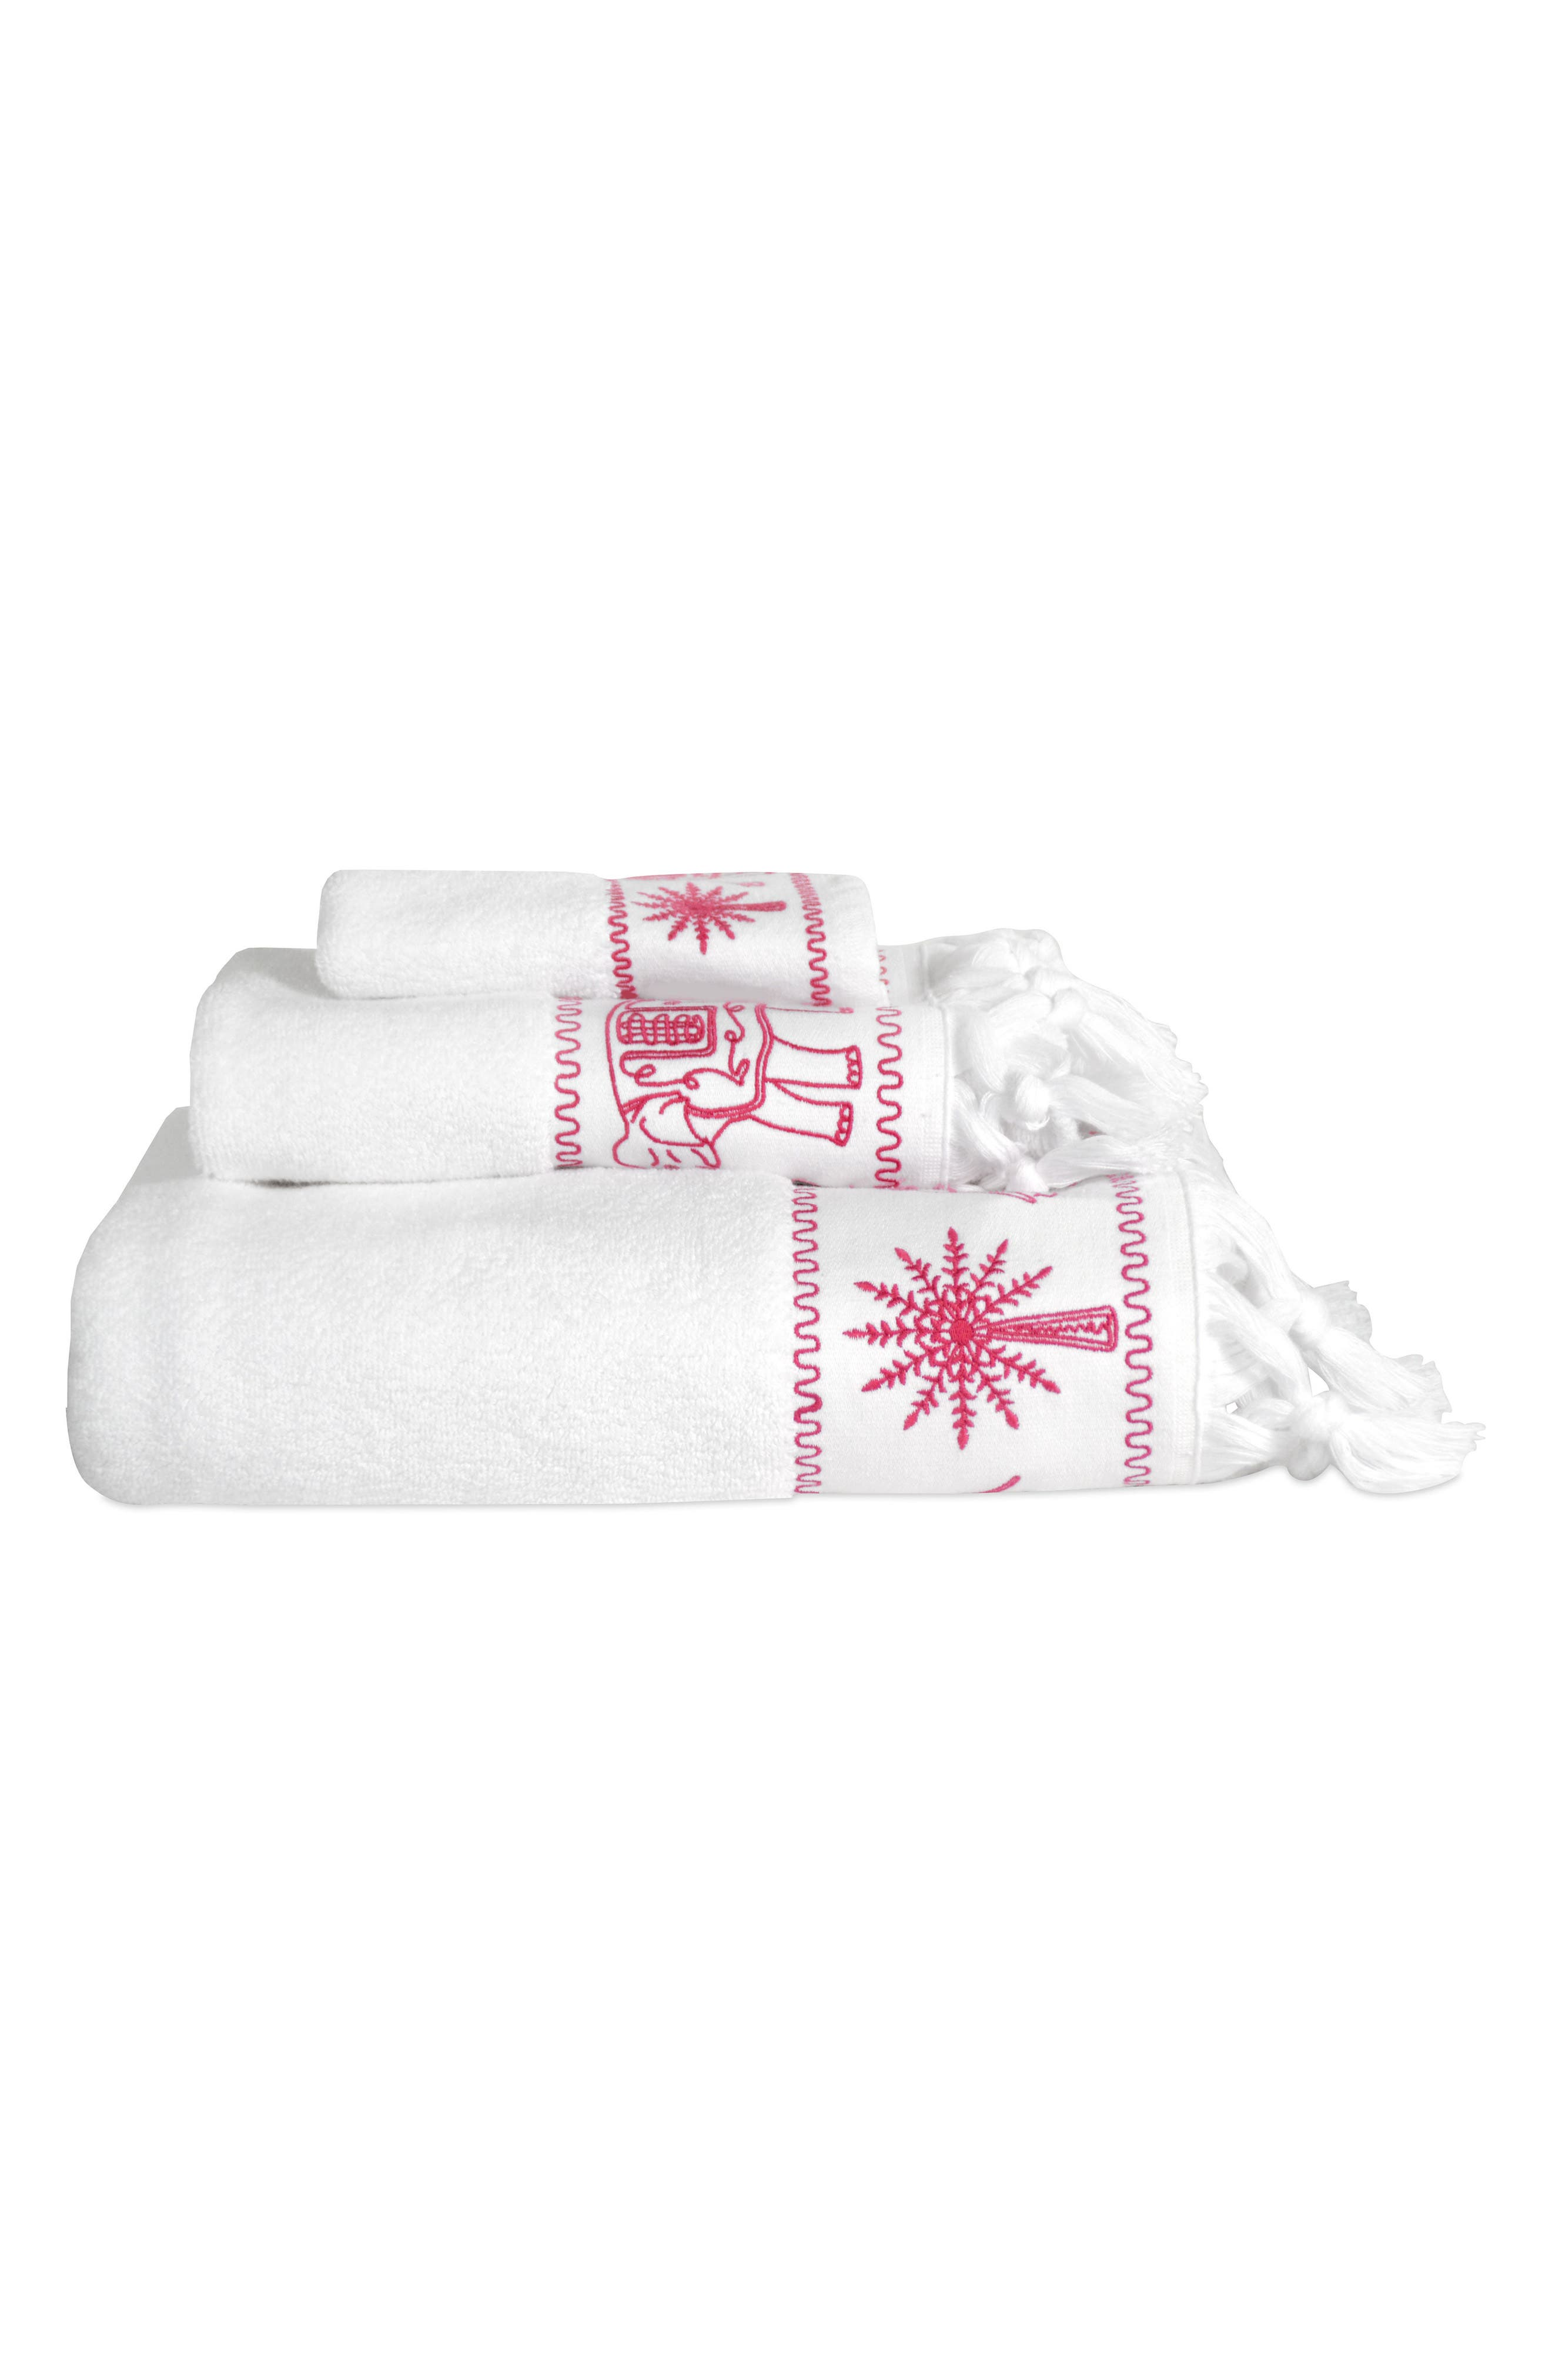 Yaji Bath Towel,                             Alternate thumbnail 2, color,                             Pink